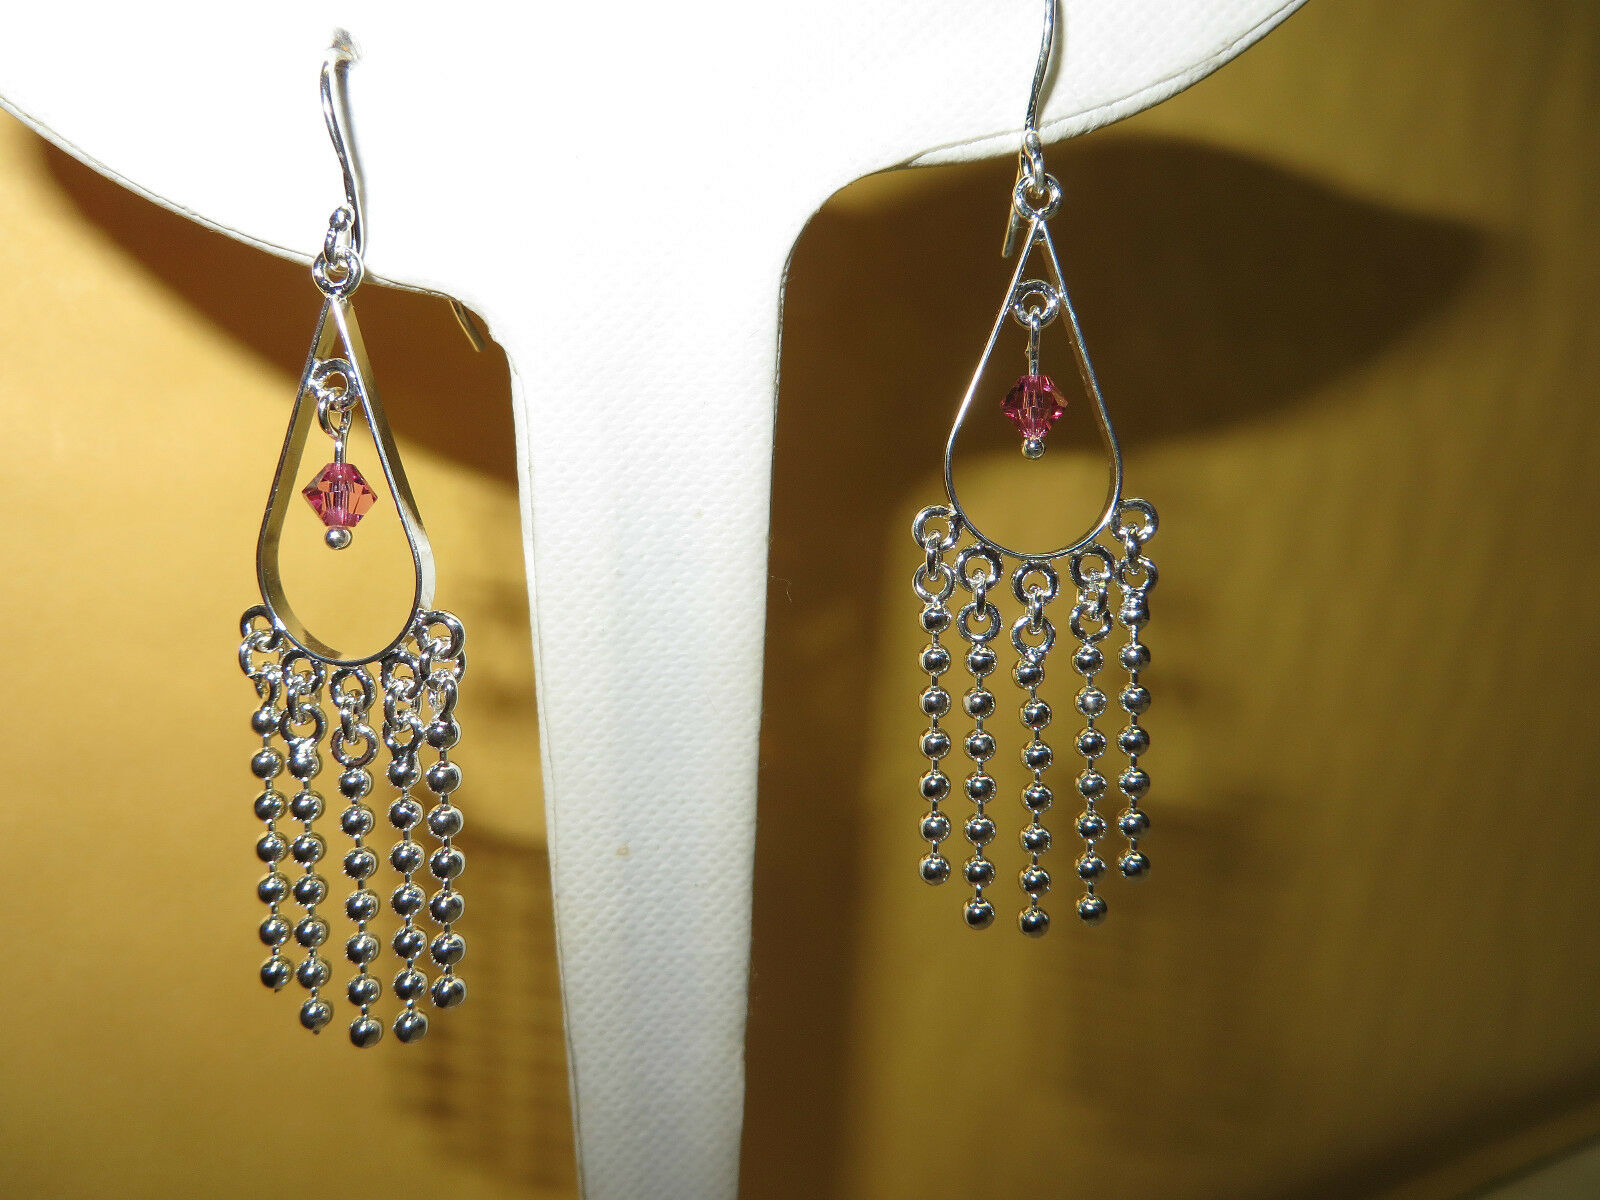 Triangle Shaped w Crystal Dangle 2 1 4 inch Earrings .925 Sterling 4.5 Grams